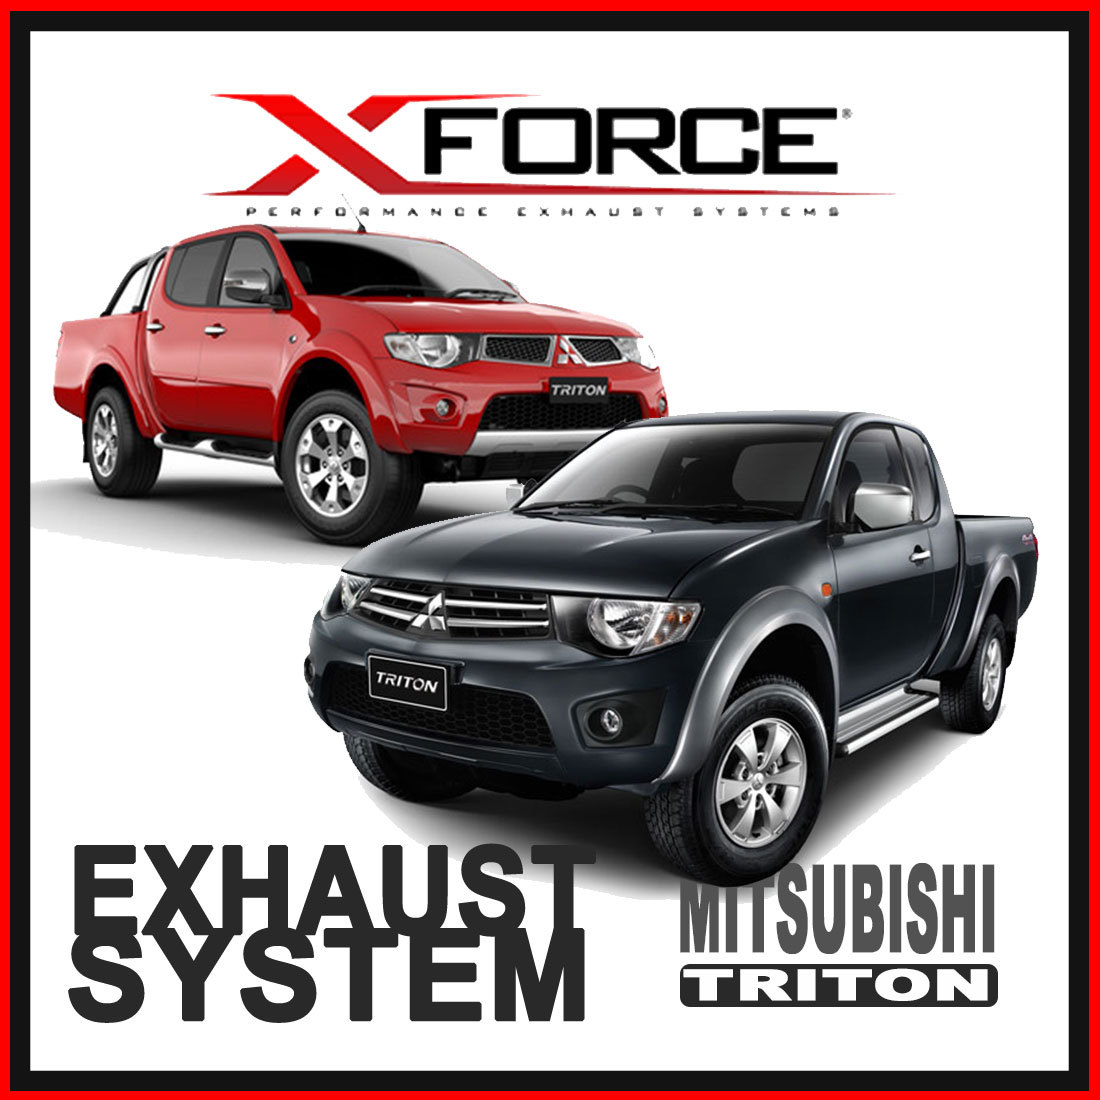 Mitsubishi Triton Xforce Stainless Steel Exhaust image